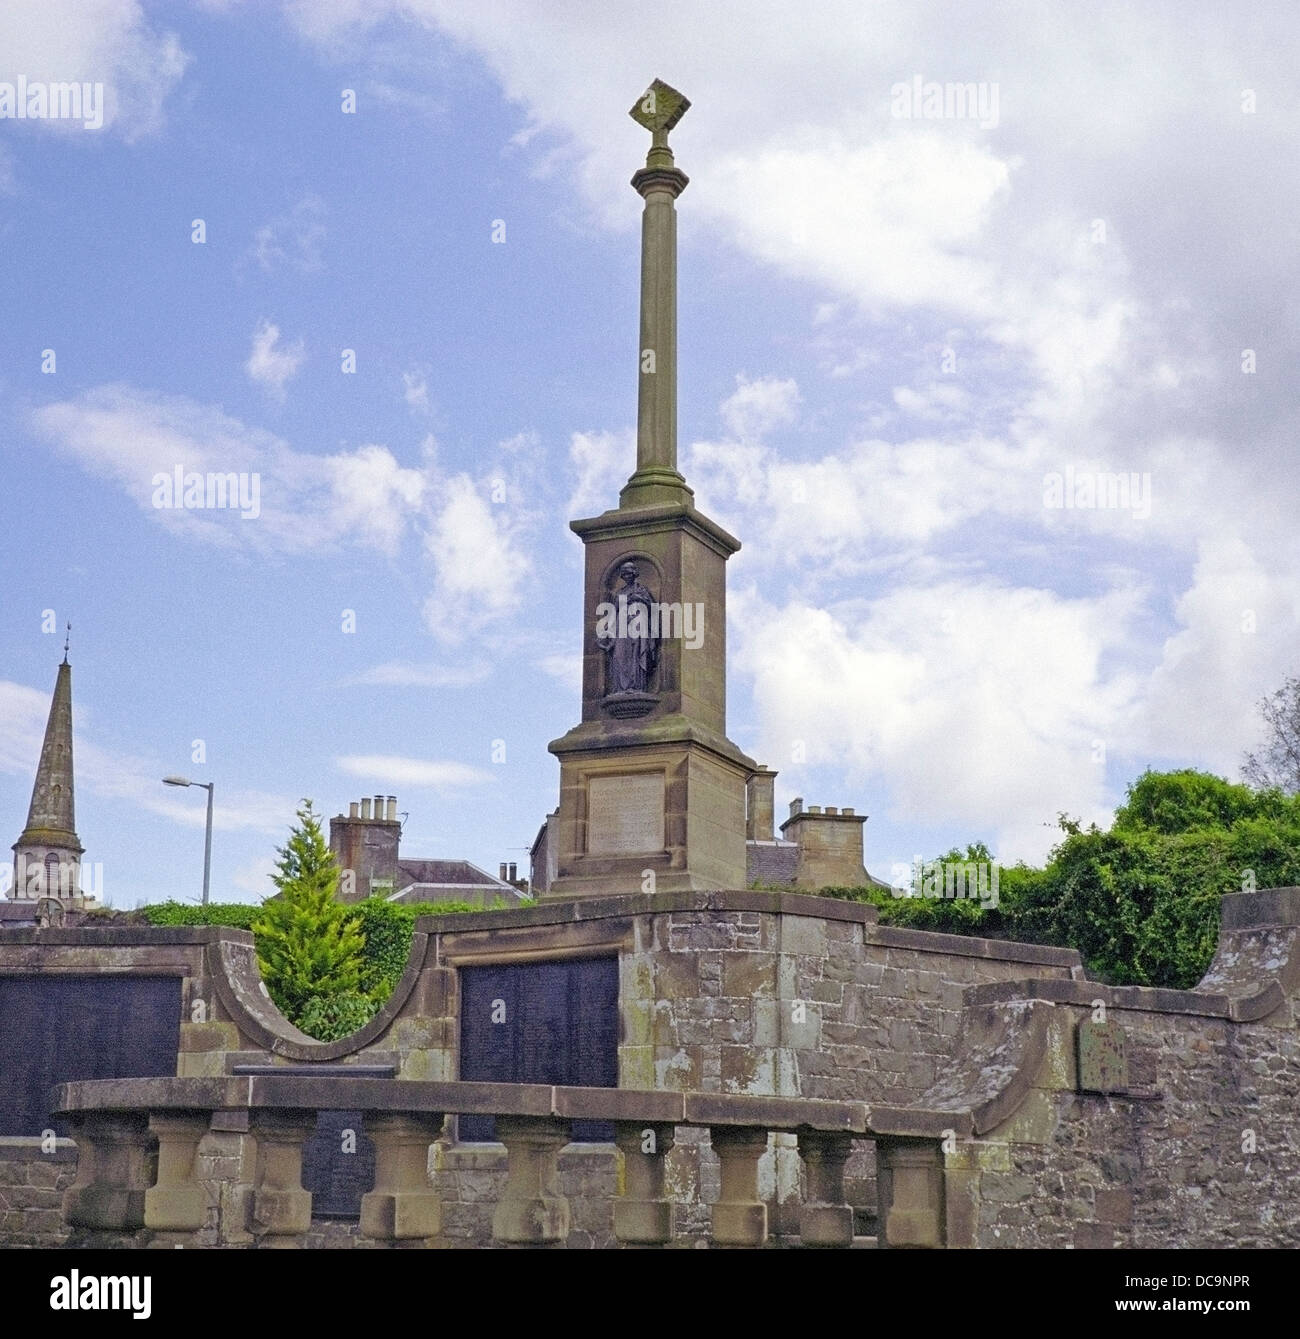 Selkirk War Memorial, Selkirk, Borders, Scotland, UK - Stock Image